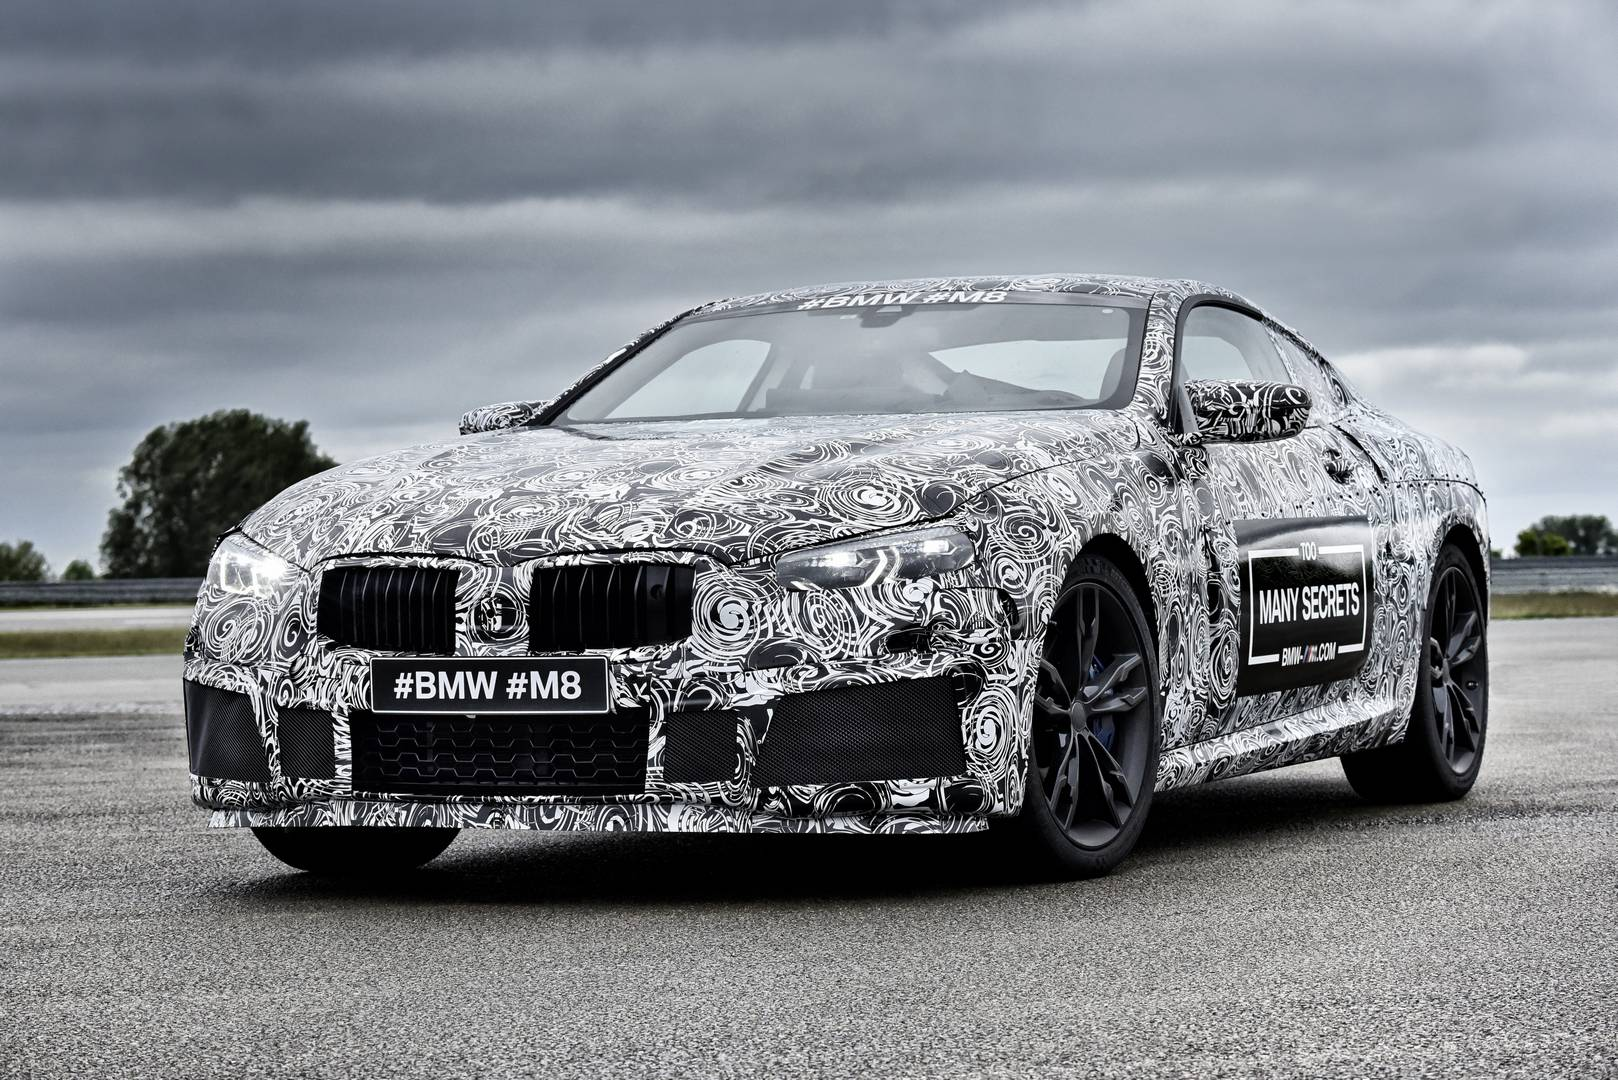 BMW M8 prototype revealed